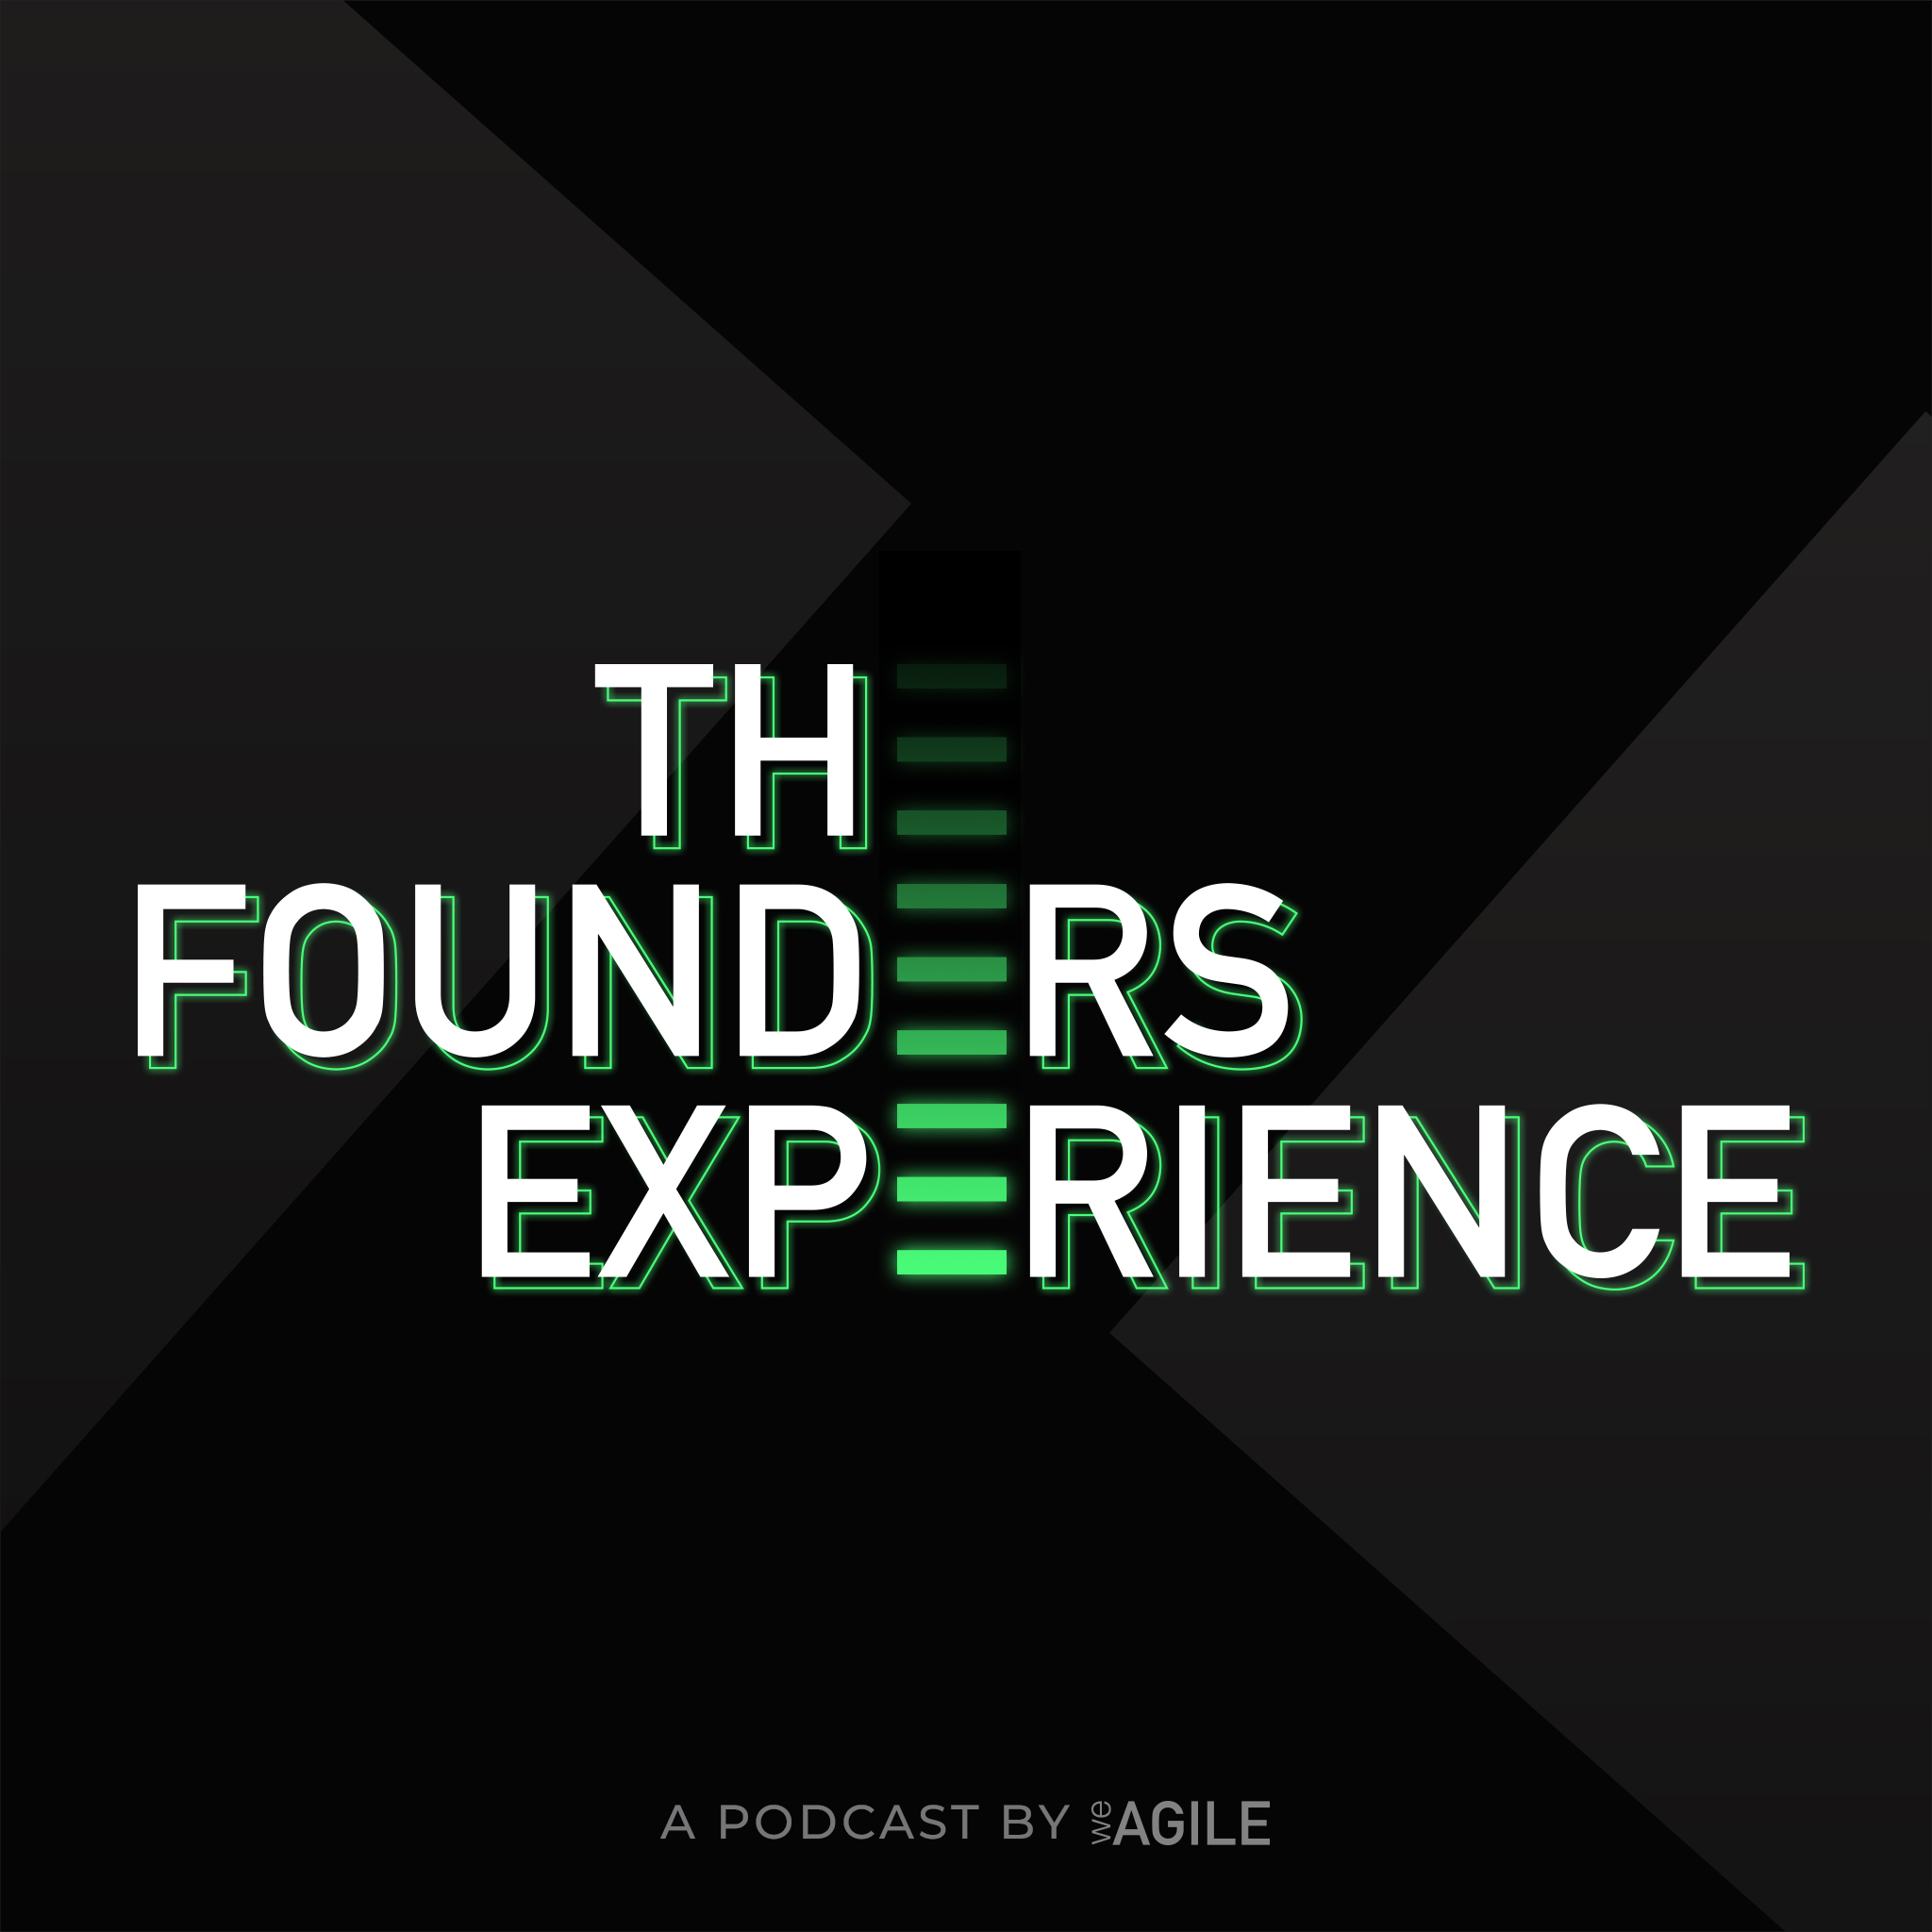 The founders experience podcast logo